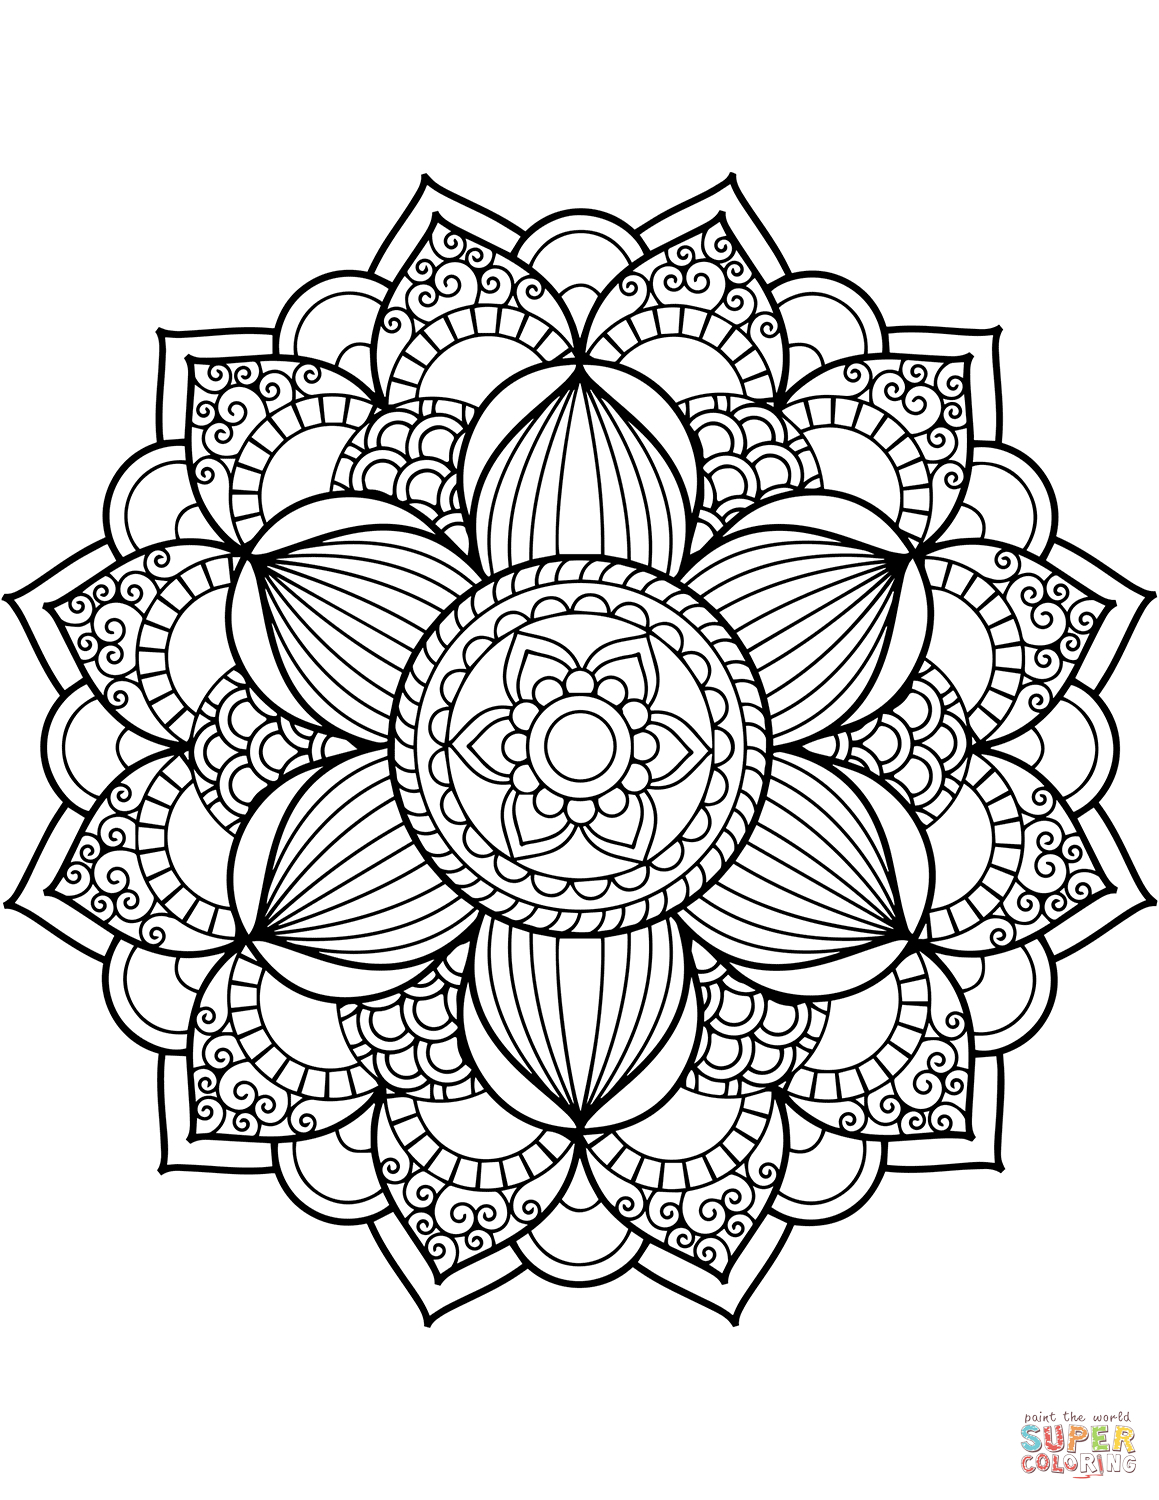 Lotus Flower Mandala Coloring Pages | Forcoloringpages.com ... | 1500x1159